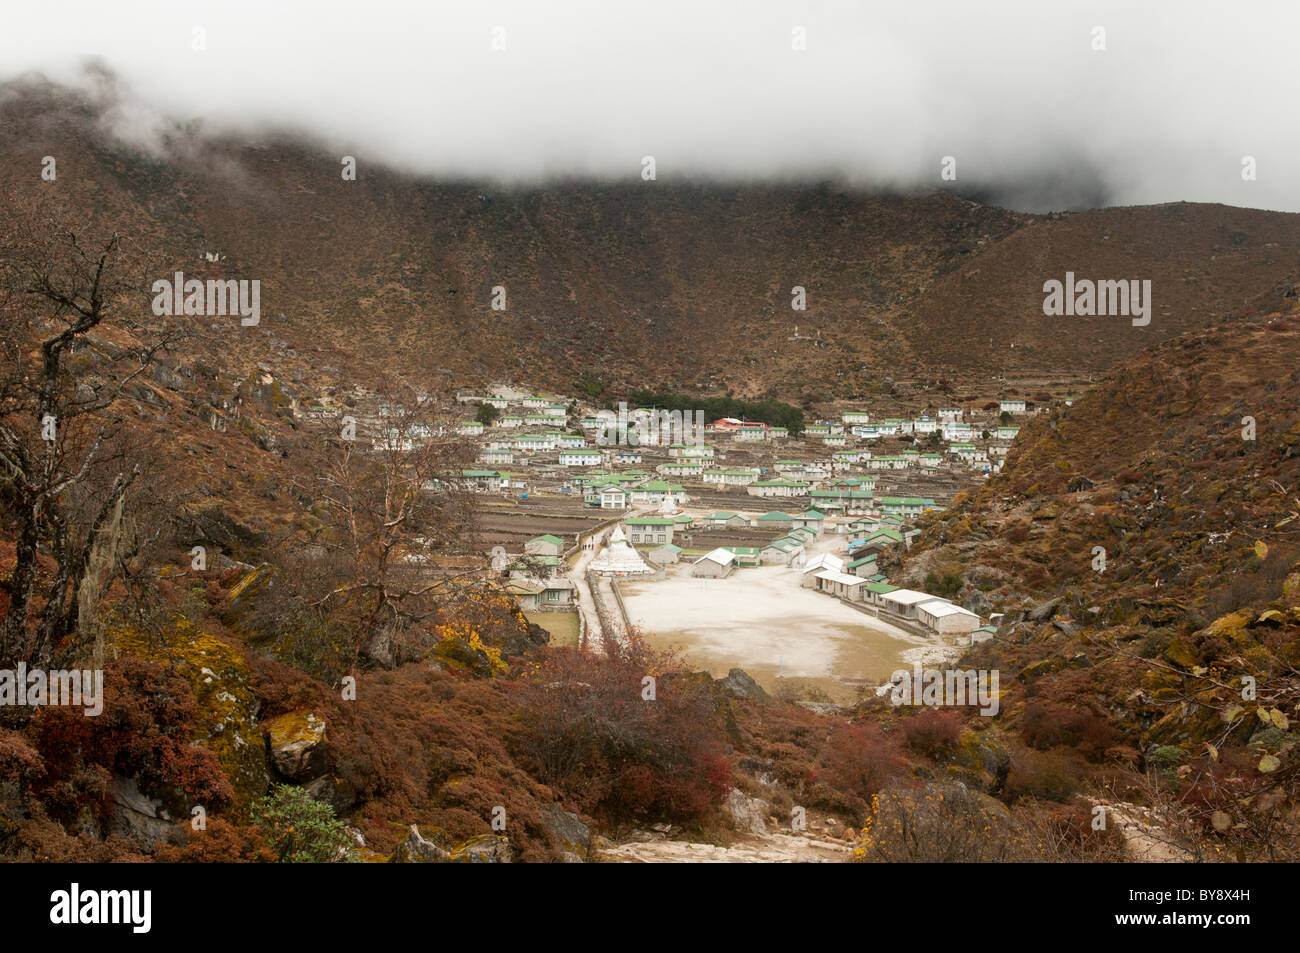 stone houses in the Sherpa village of Khumjung in the Everest Region of Nepal - Stock Image